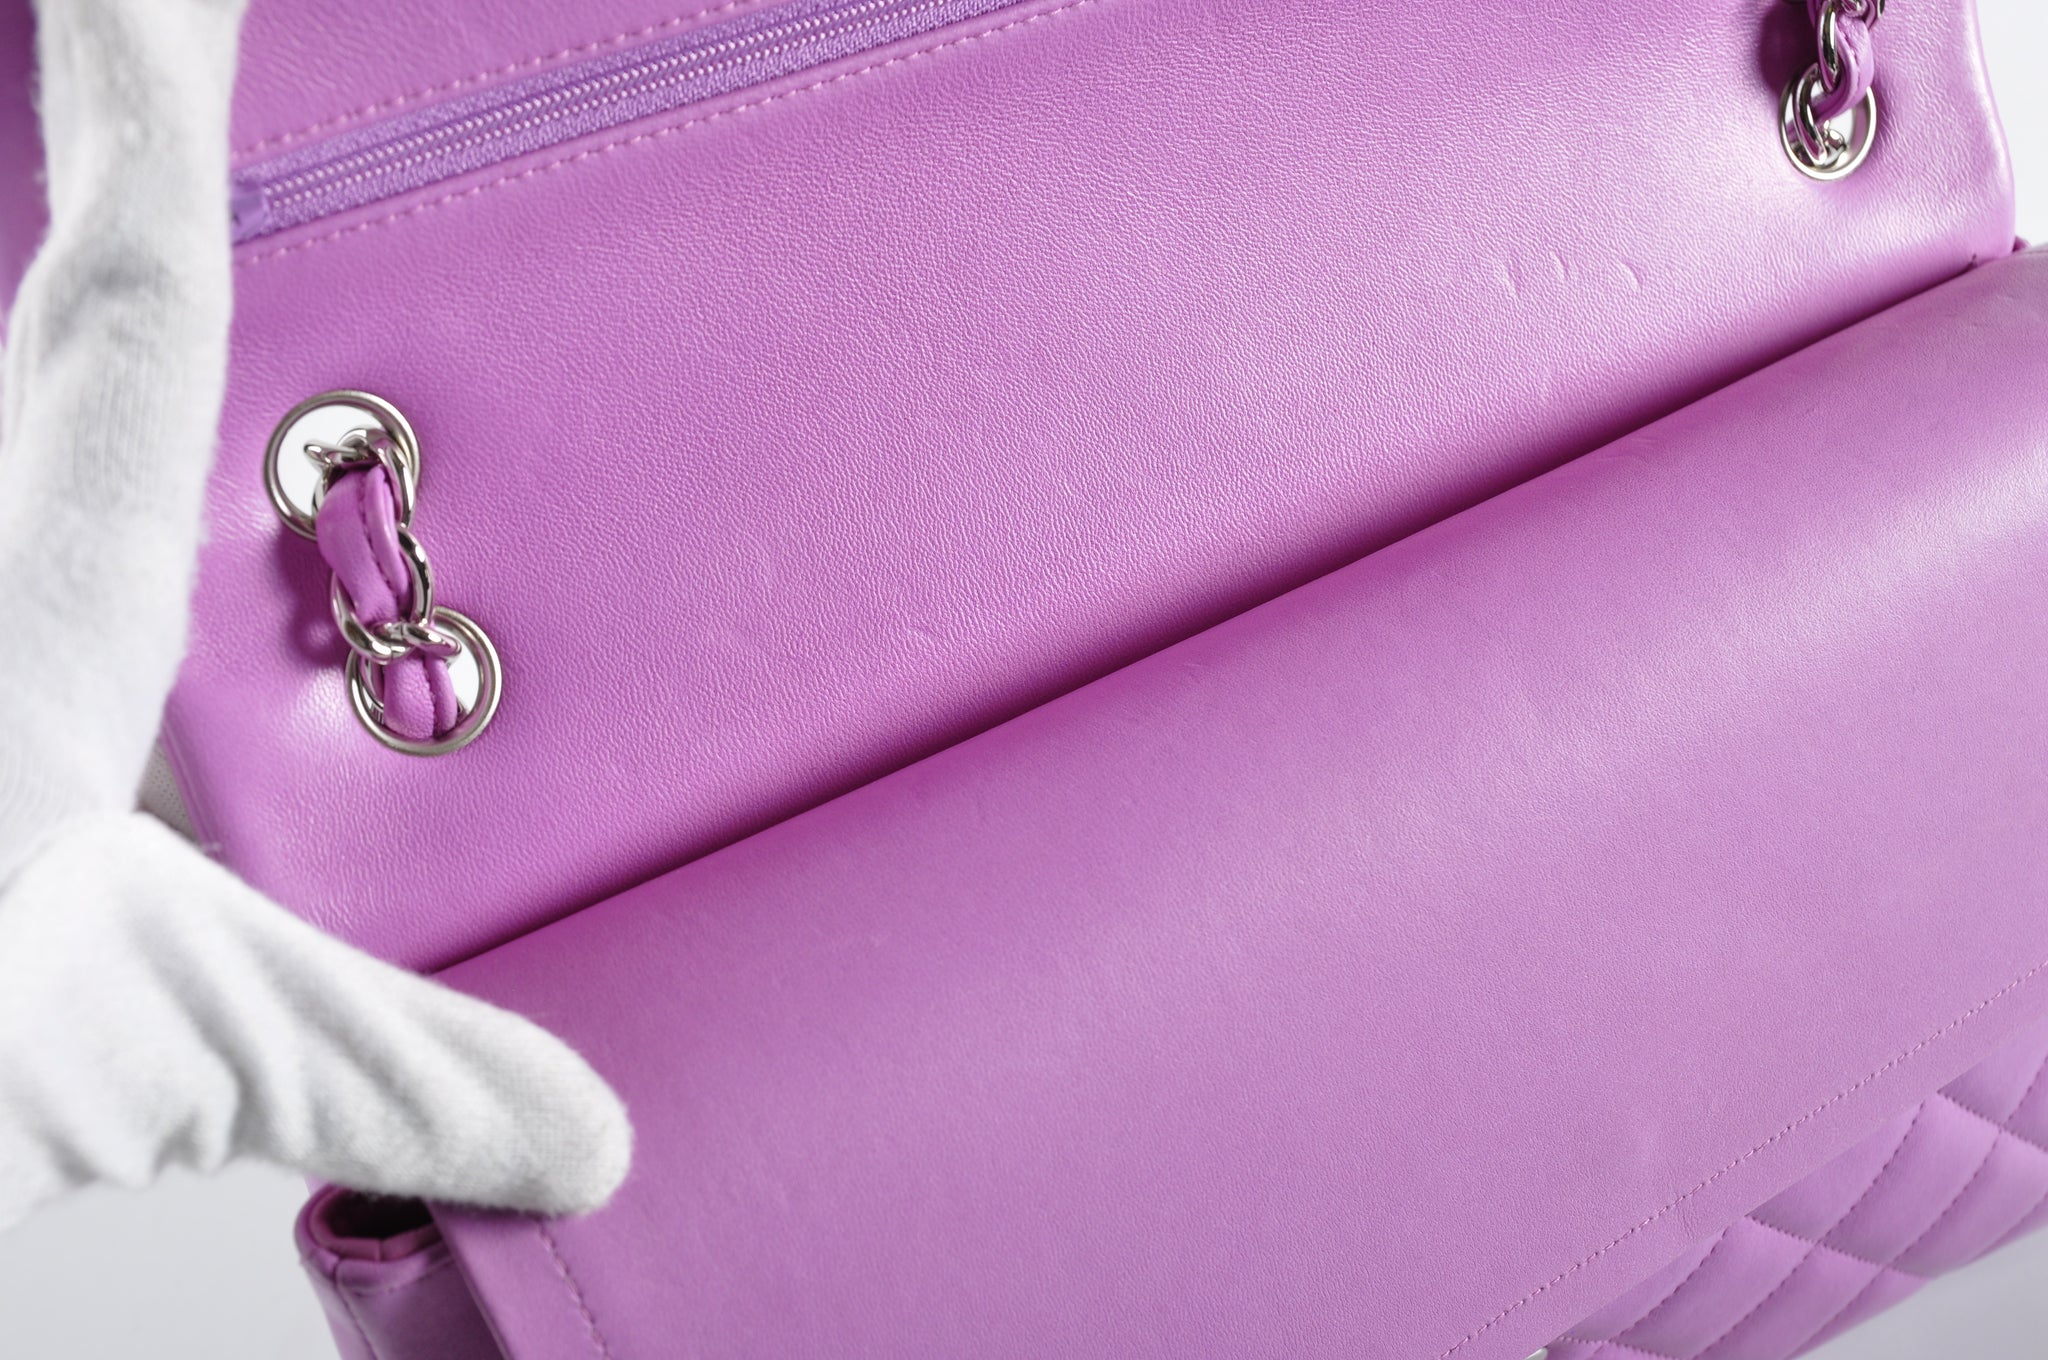 Chanel Jumbo Lambskin Double Flap in Bubblegum SHW 14858711 - Glampot